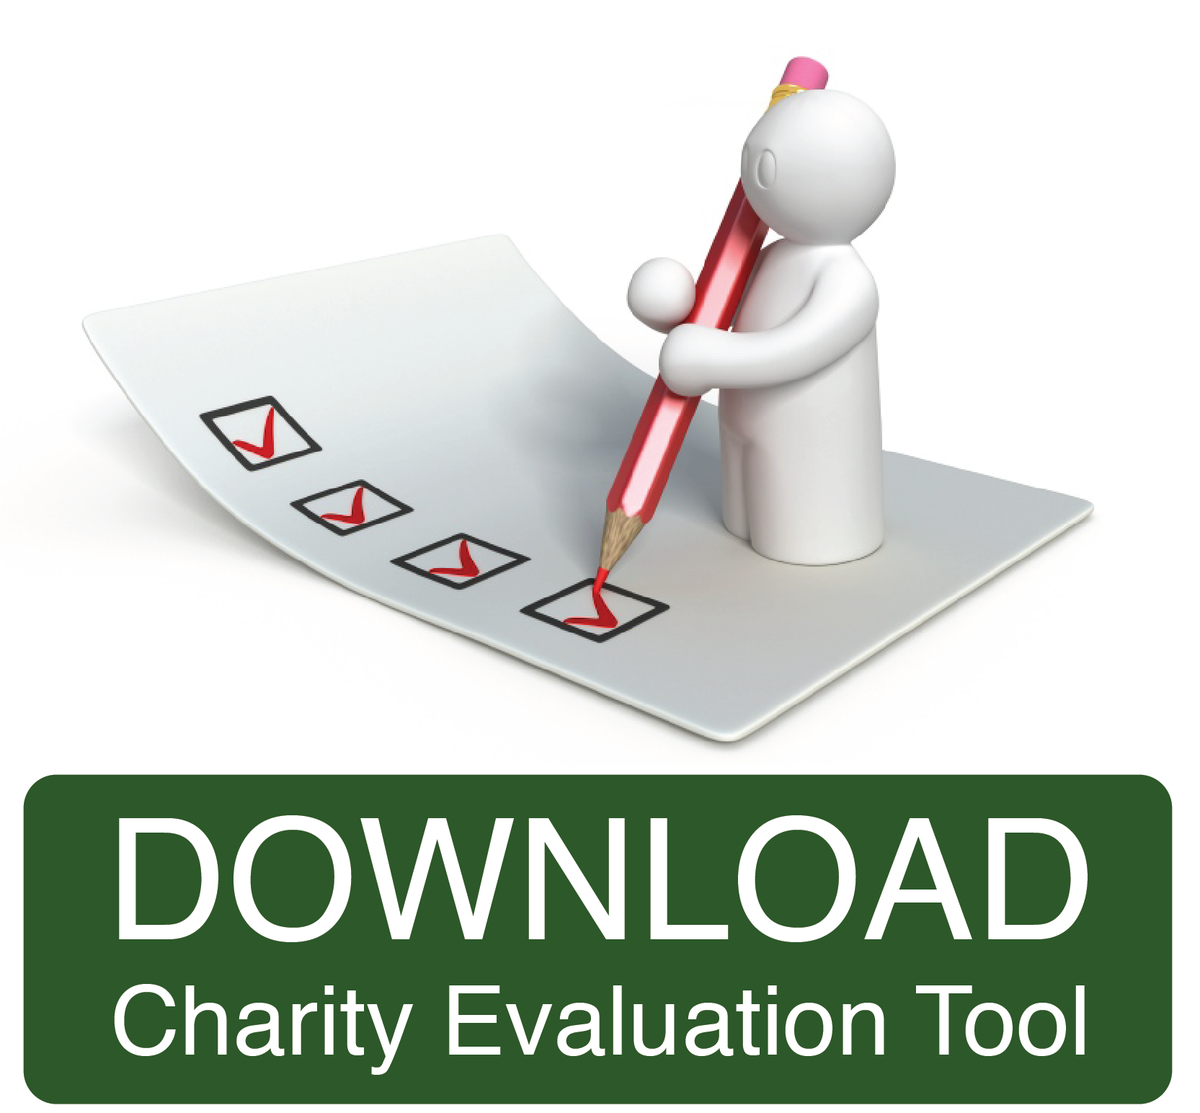 Excellence In Giving EIGphilanthropy – Charity Evaluation